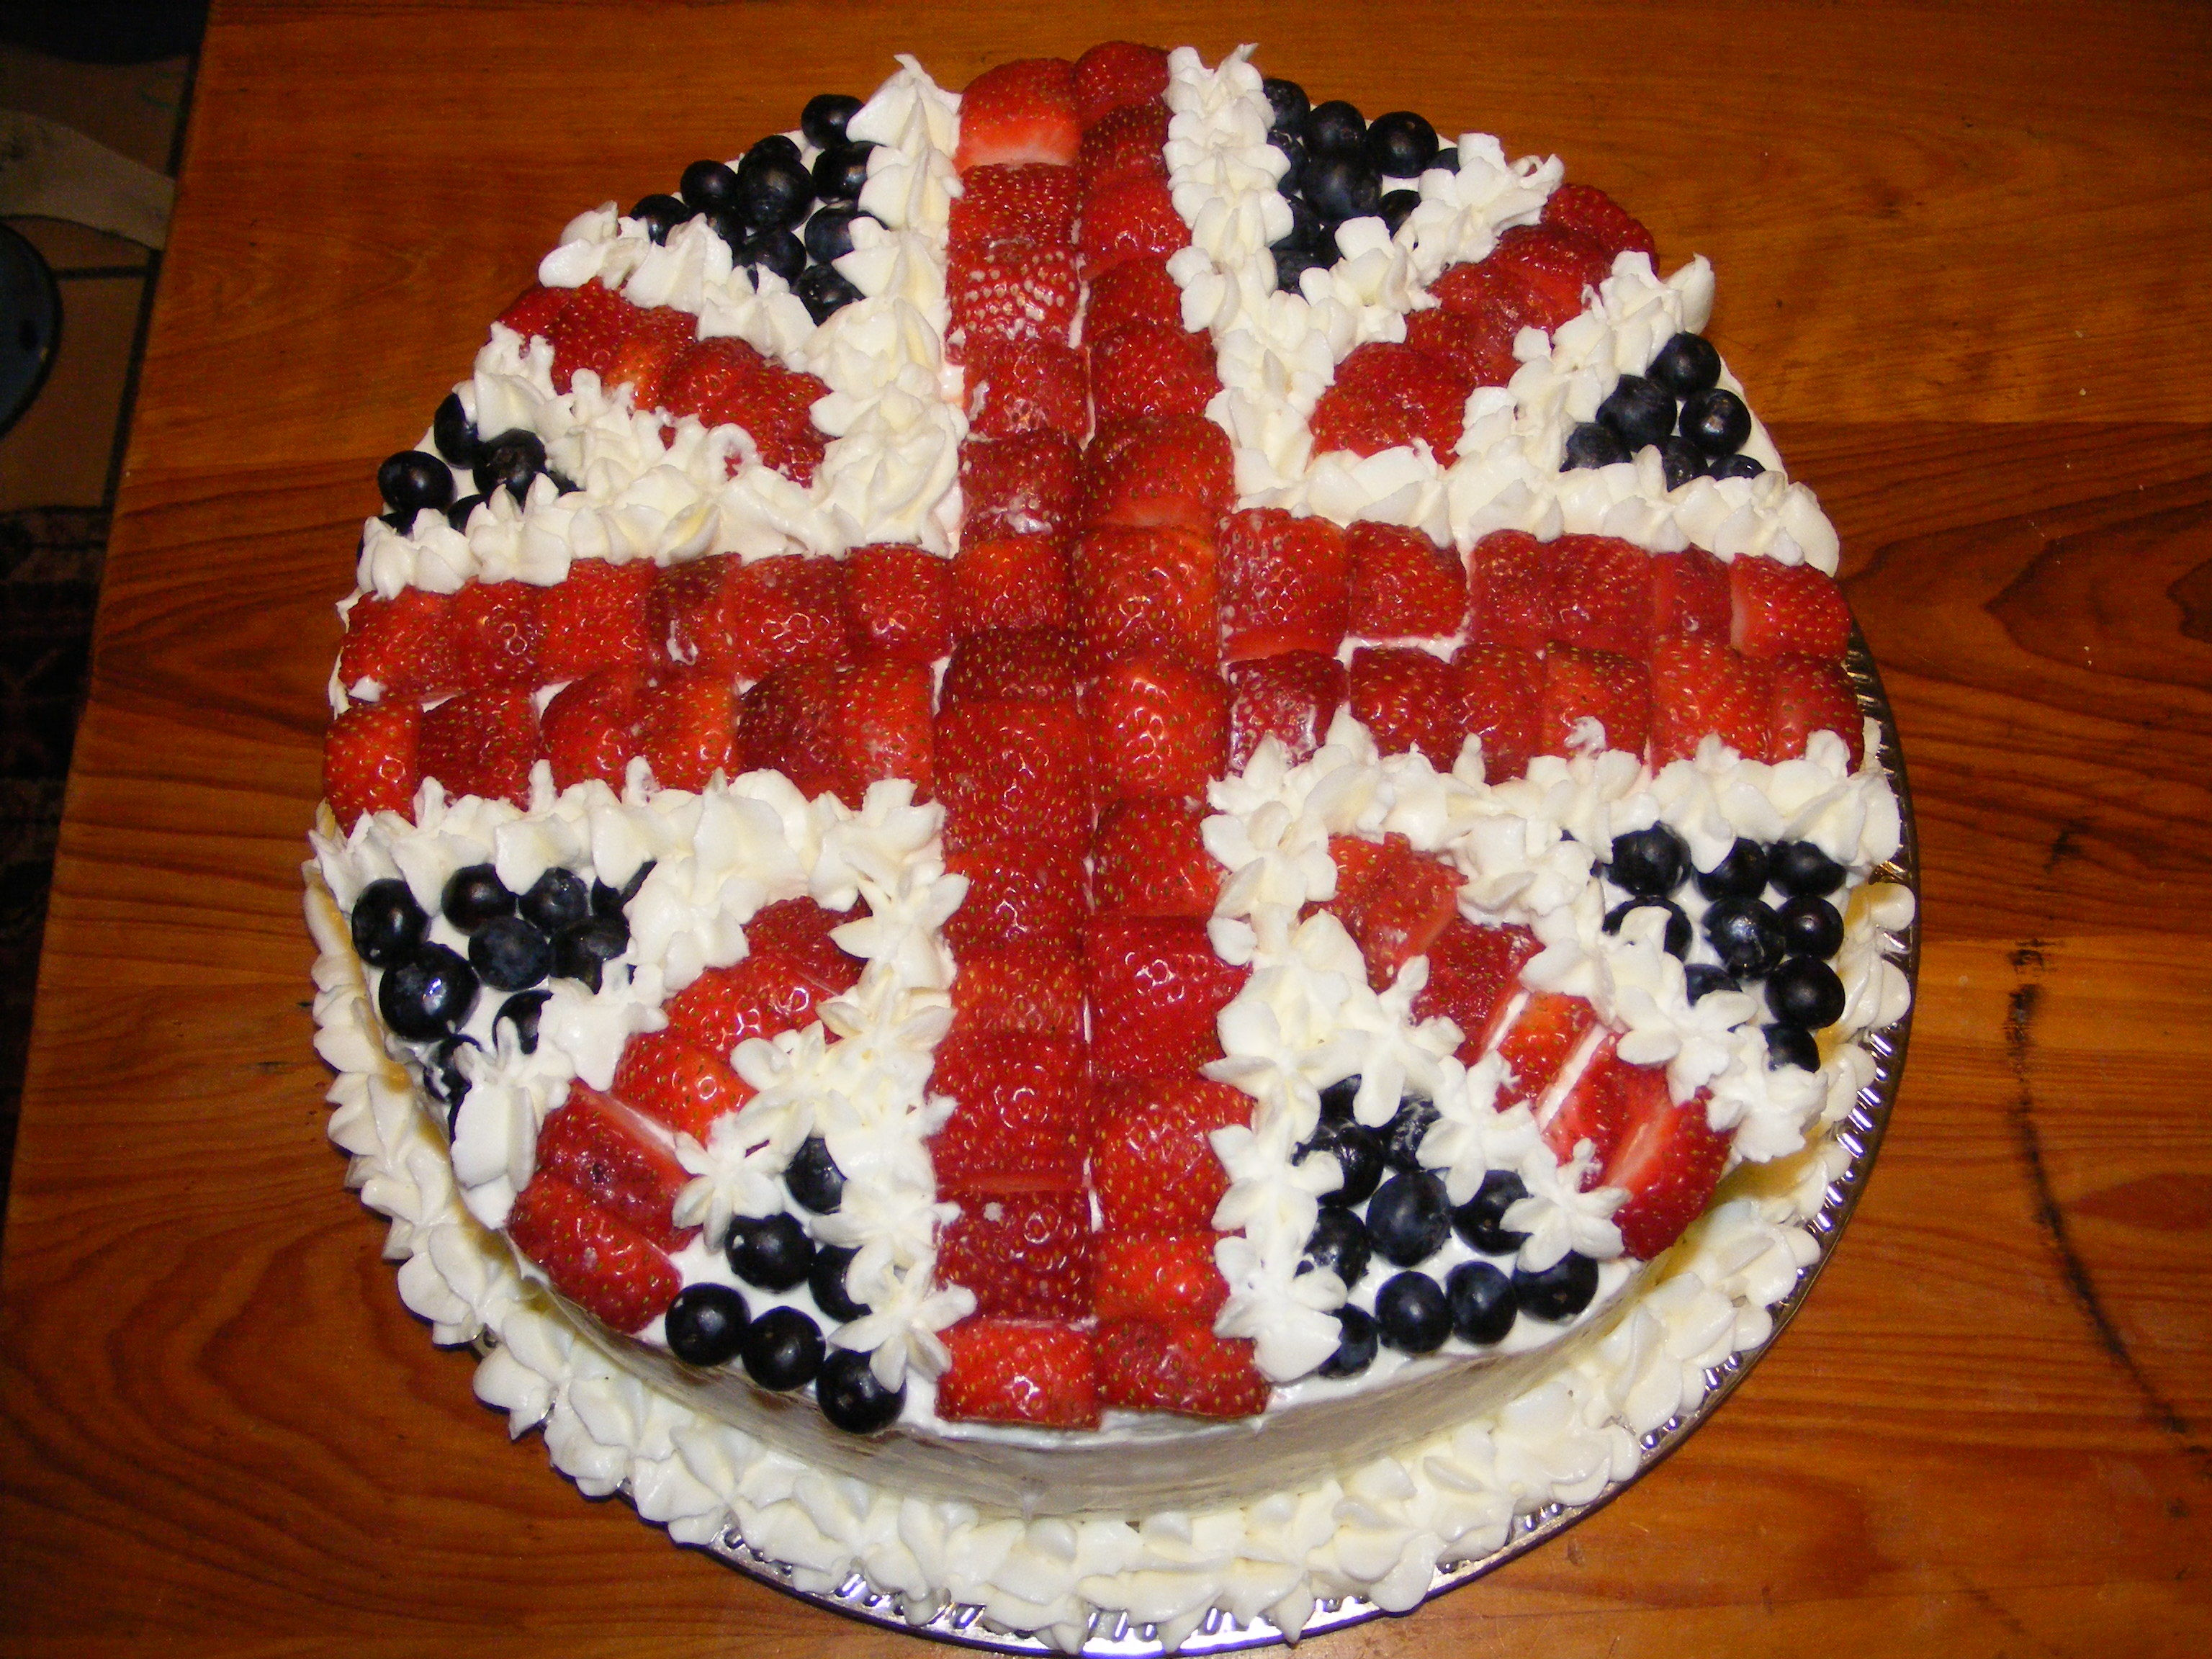 Anorak News Dorset School Replaces Banned Sugar And Birthday Cakes